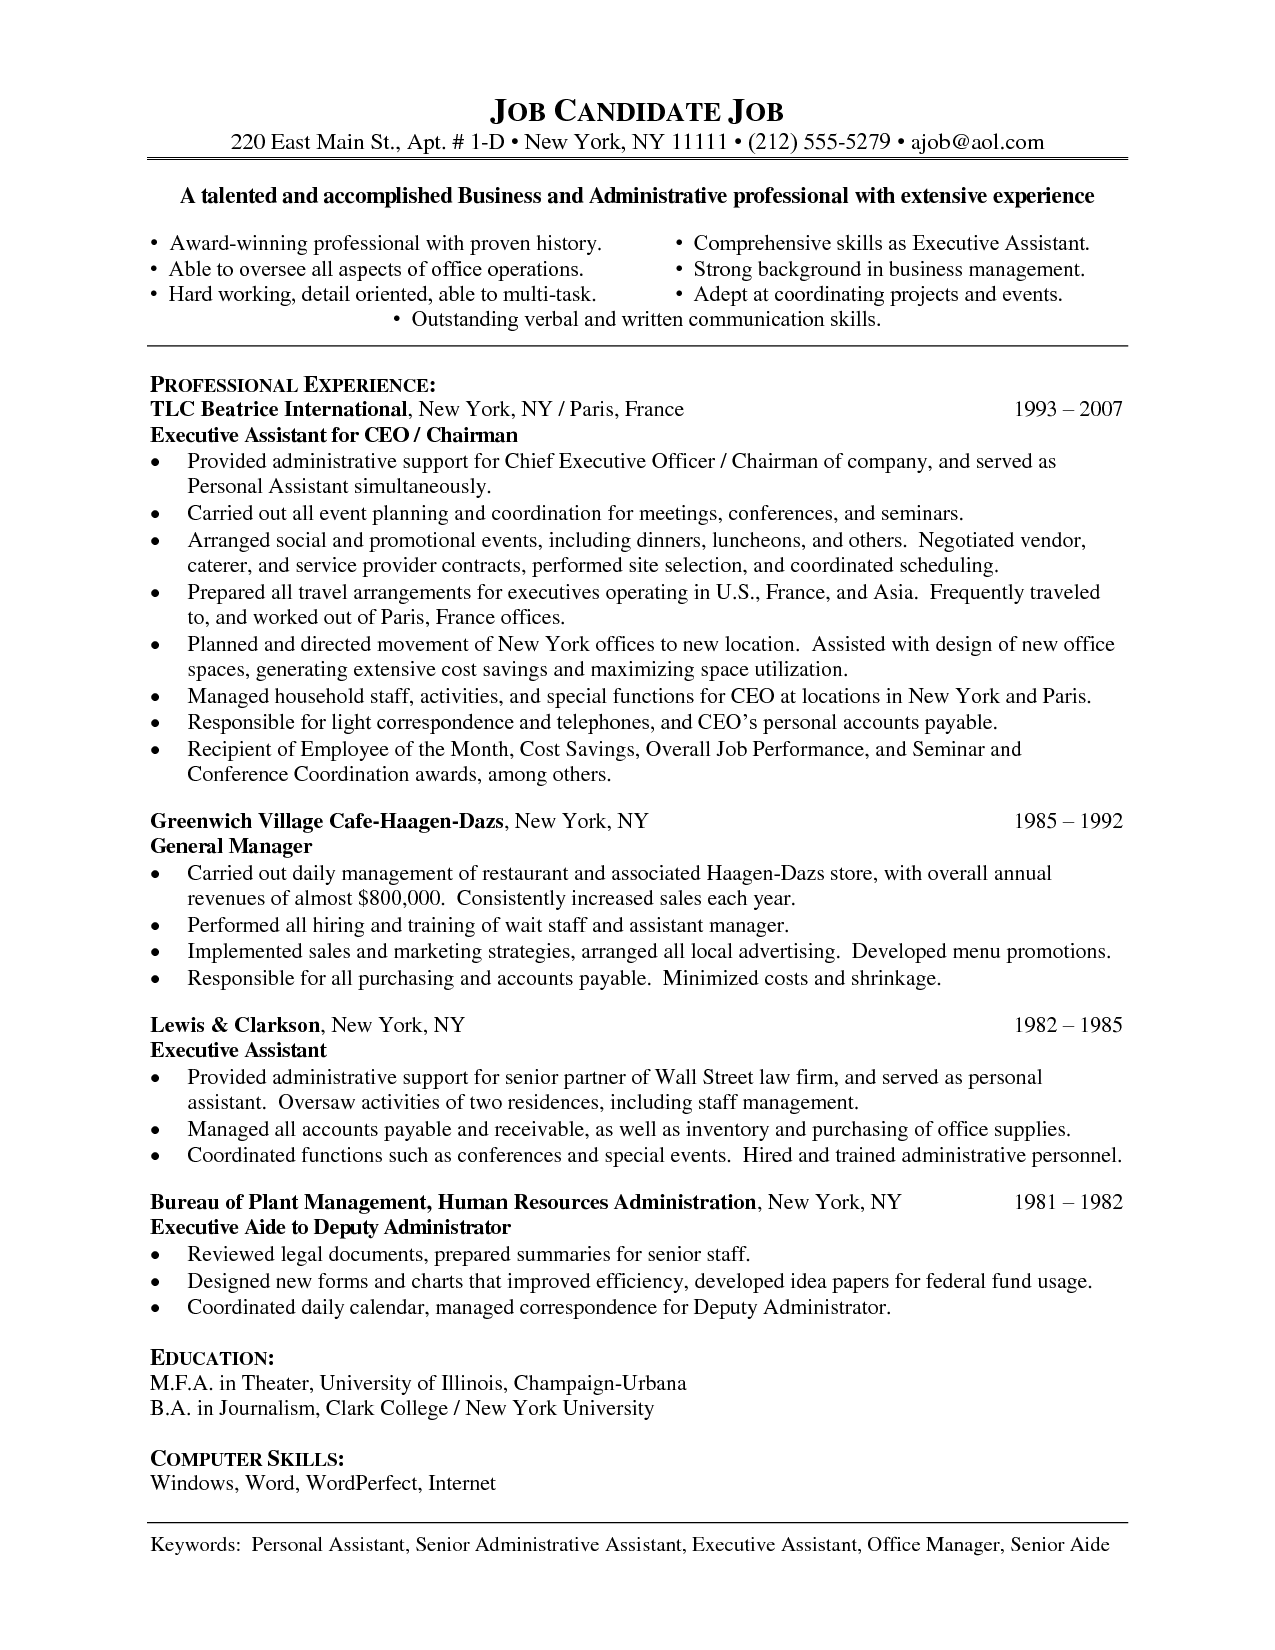 administrative functional resume - Google Search | Administrative ...